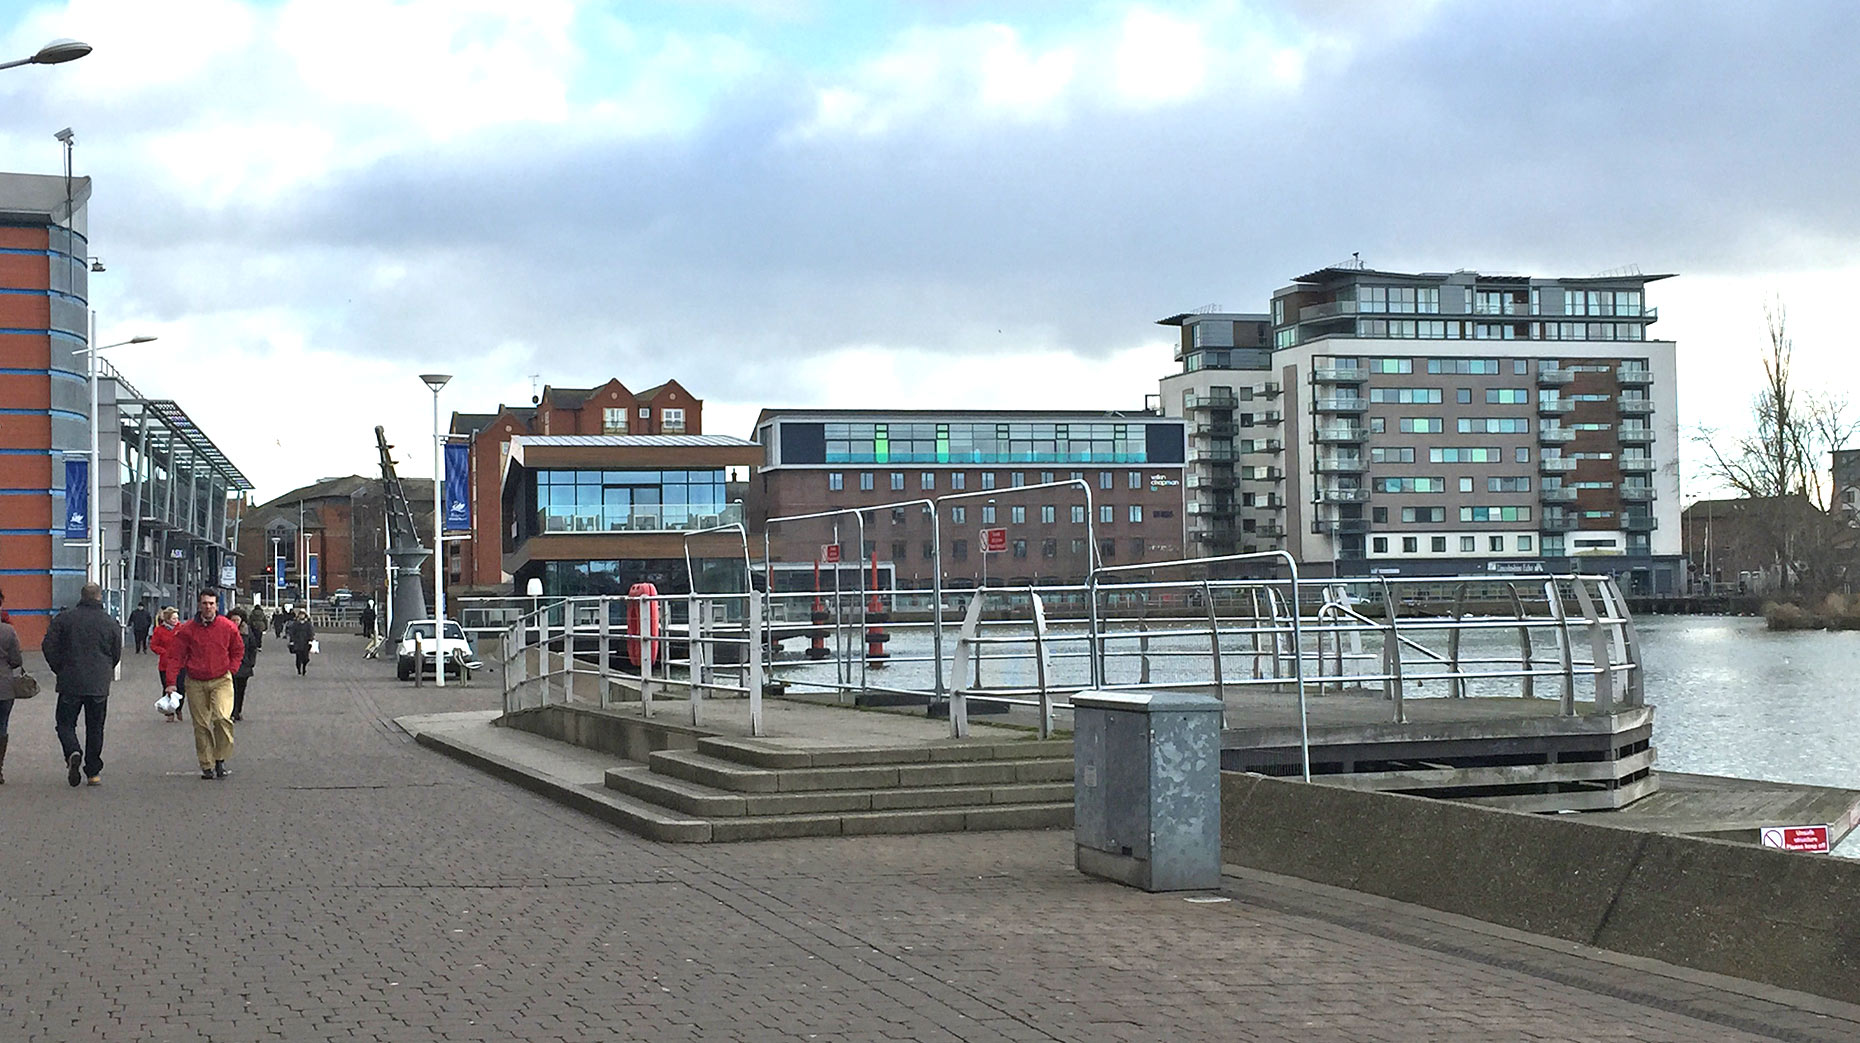 The current viewing platform on the Brayford site. Photo: The Lincolnite